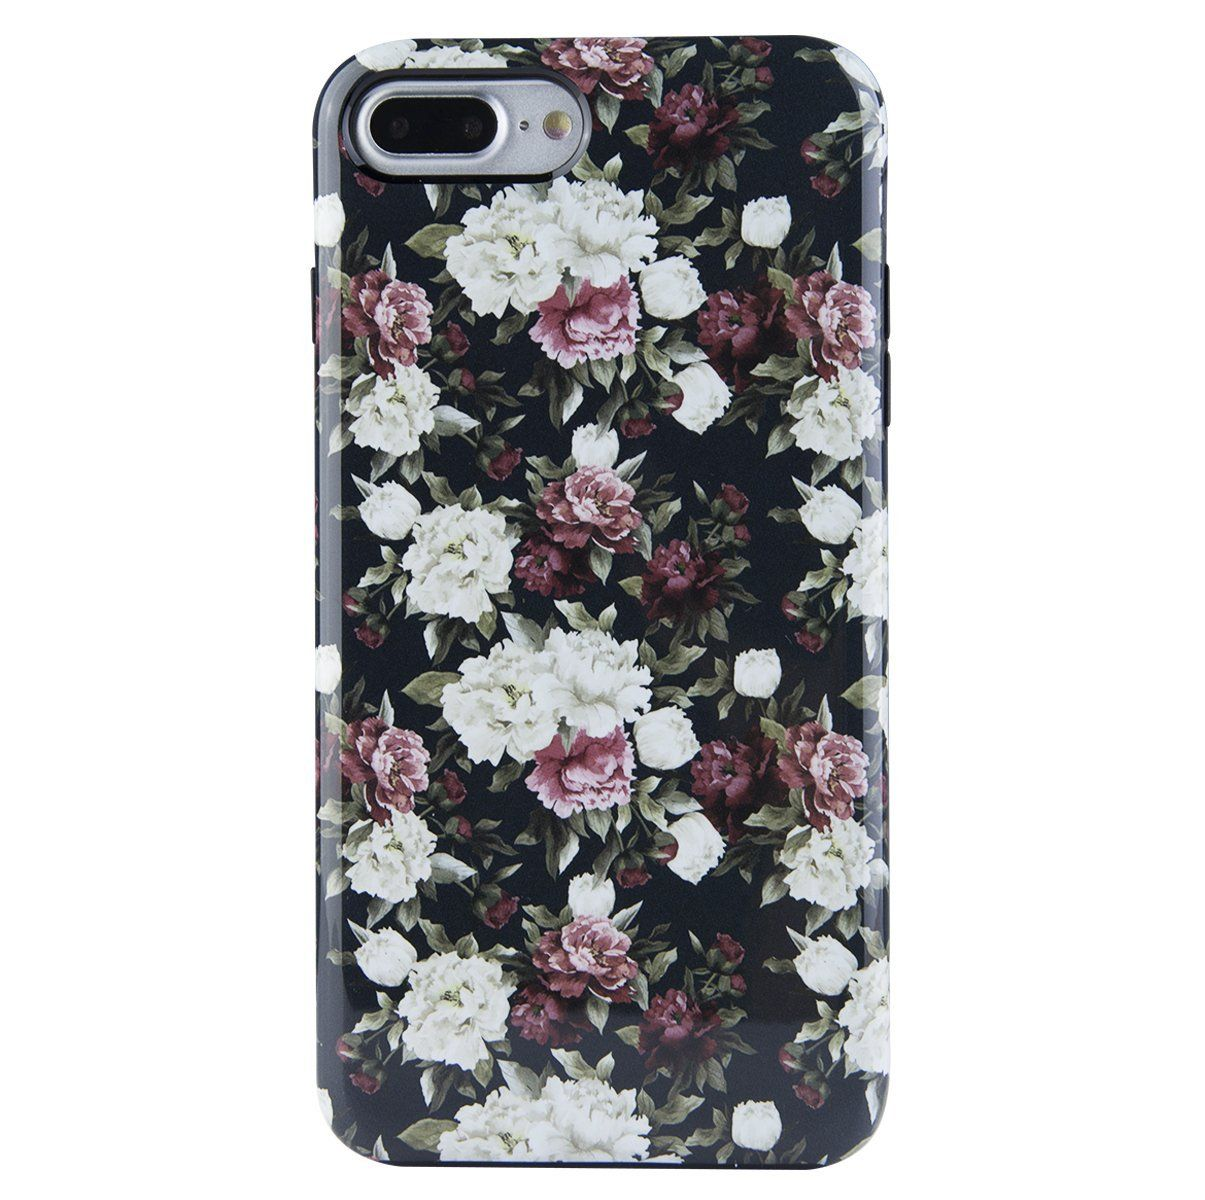 65d2fb31fa86 iPhone 7 Plus Case, iPhone 8 Plus Case for Girls, Dimaka Cute Floral Print  Pattern Protective Case 2 Layer Parts Hybrid Cover for iPhone 7 Plus and iPhone  8 ...